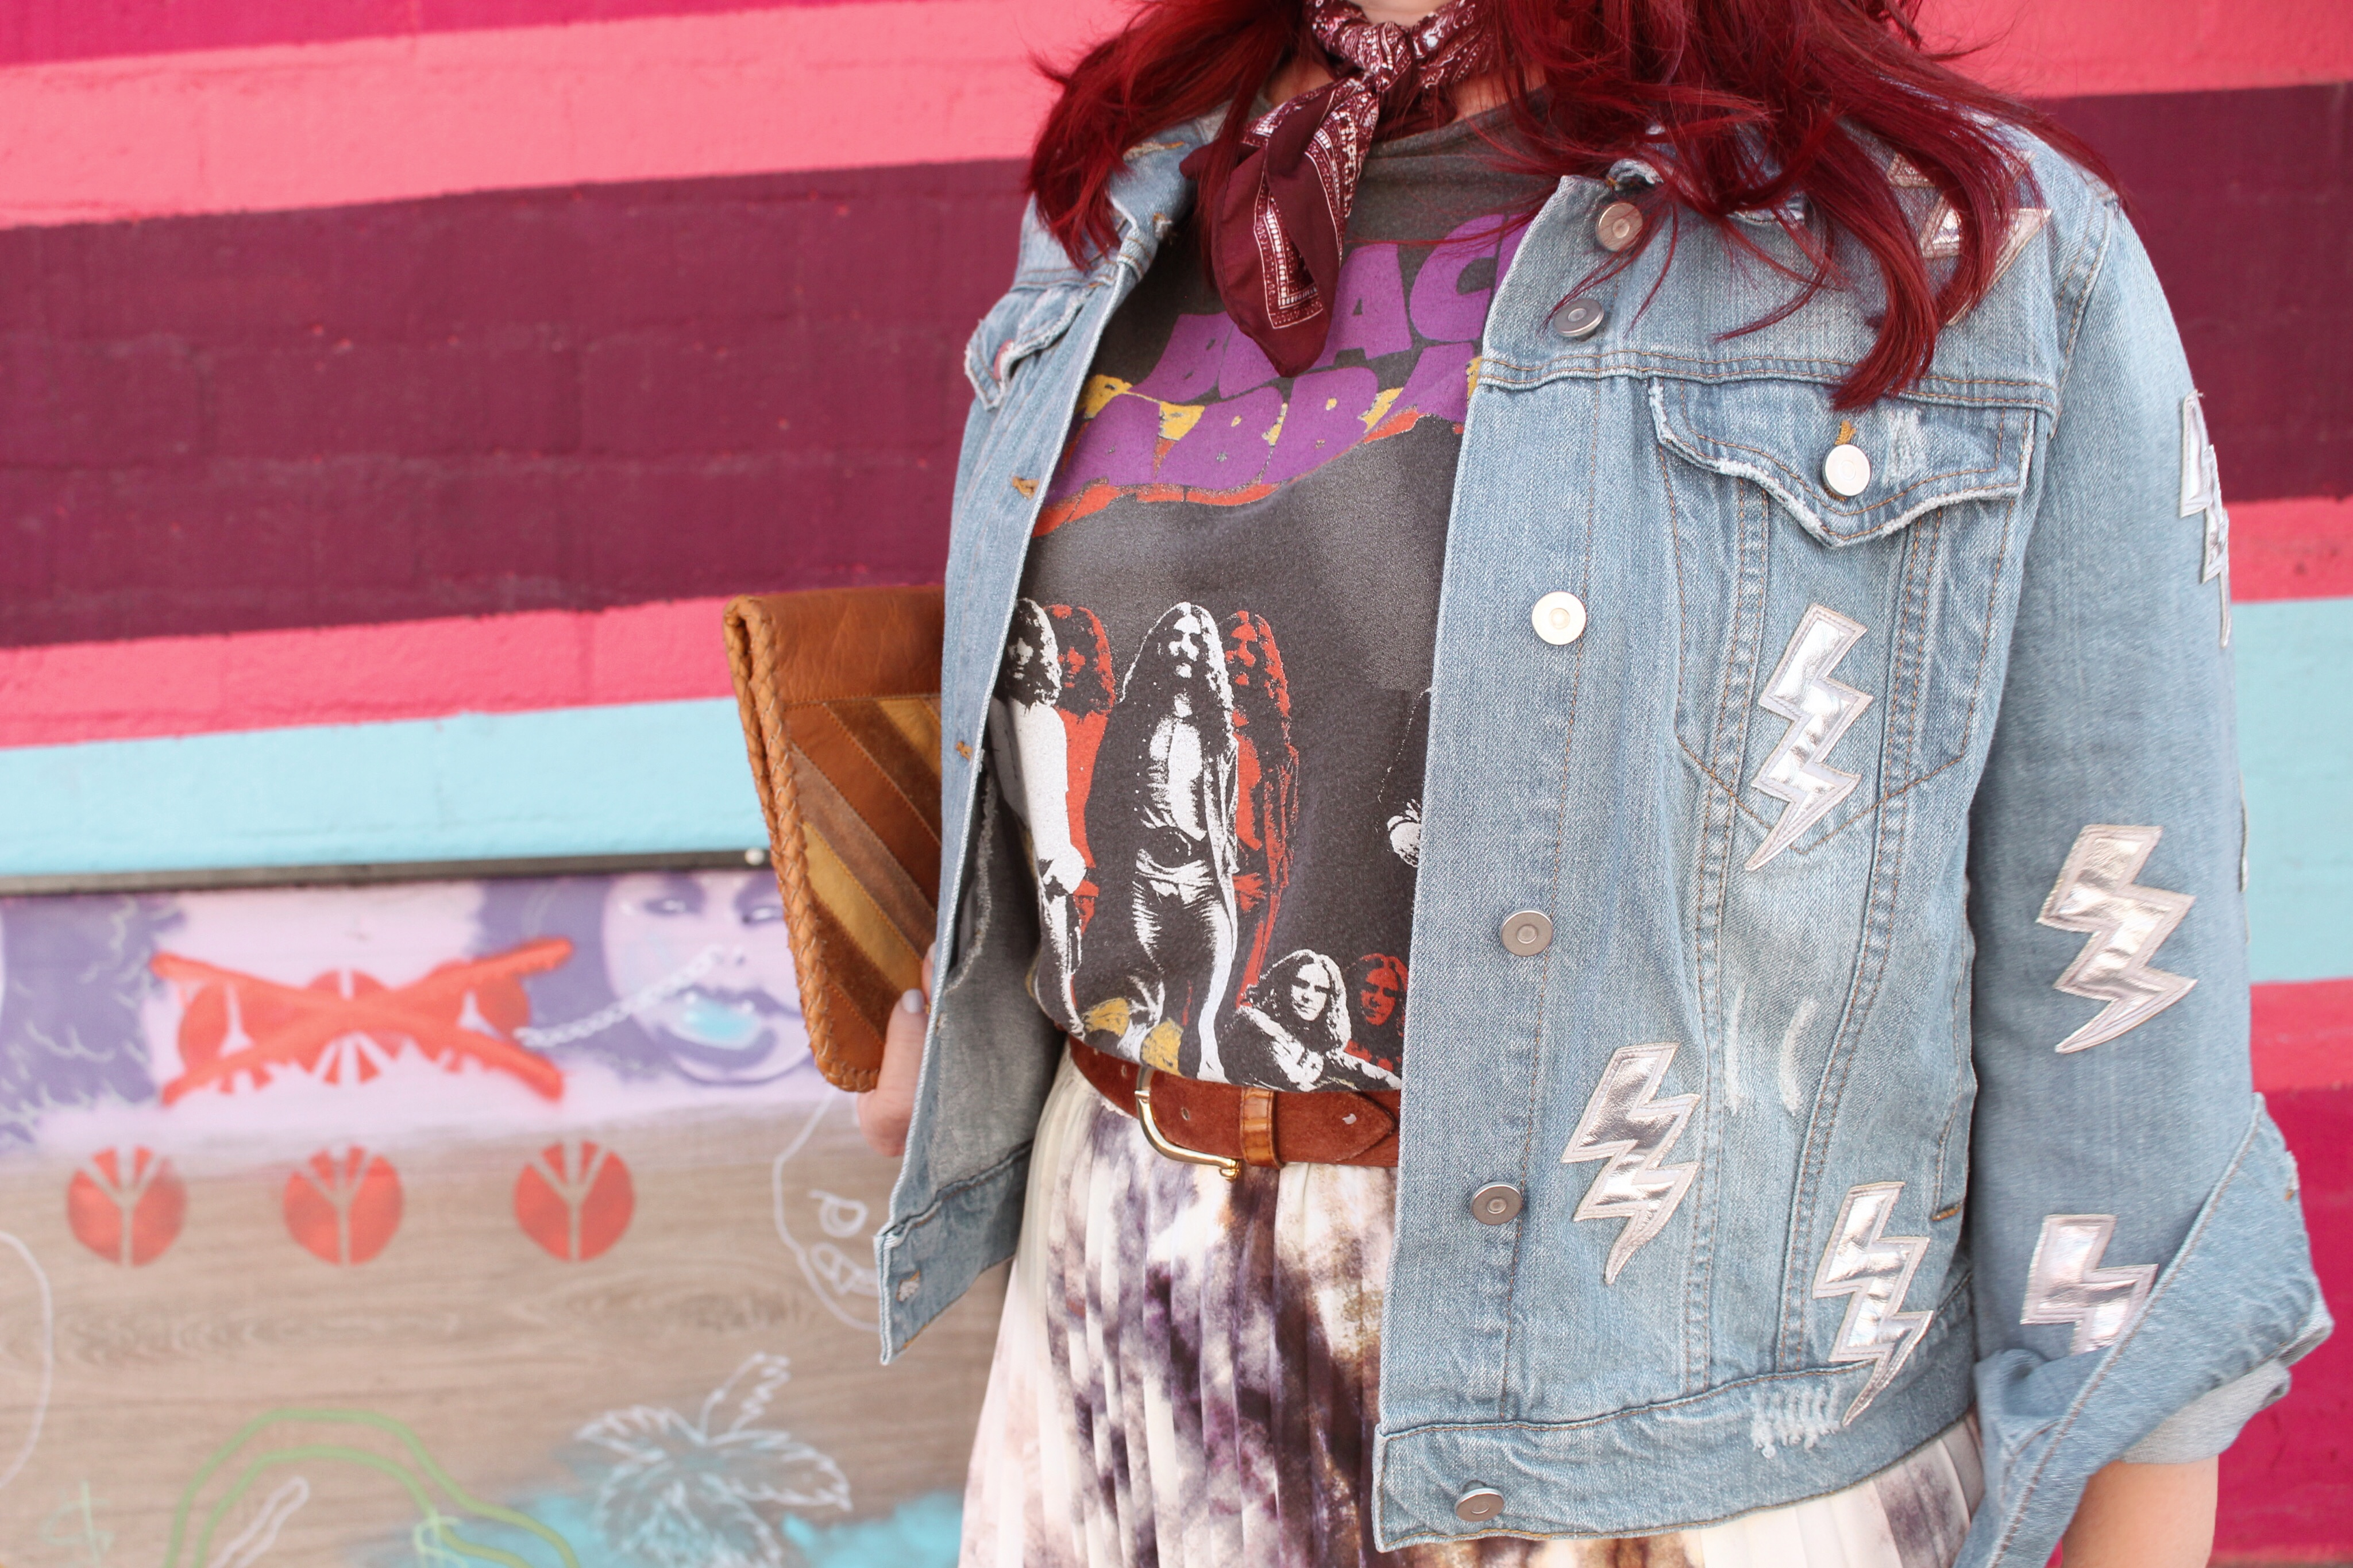 How To Wear Tie Dye Without Looking Like a Hippie